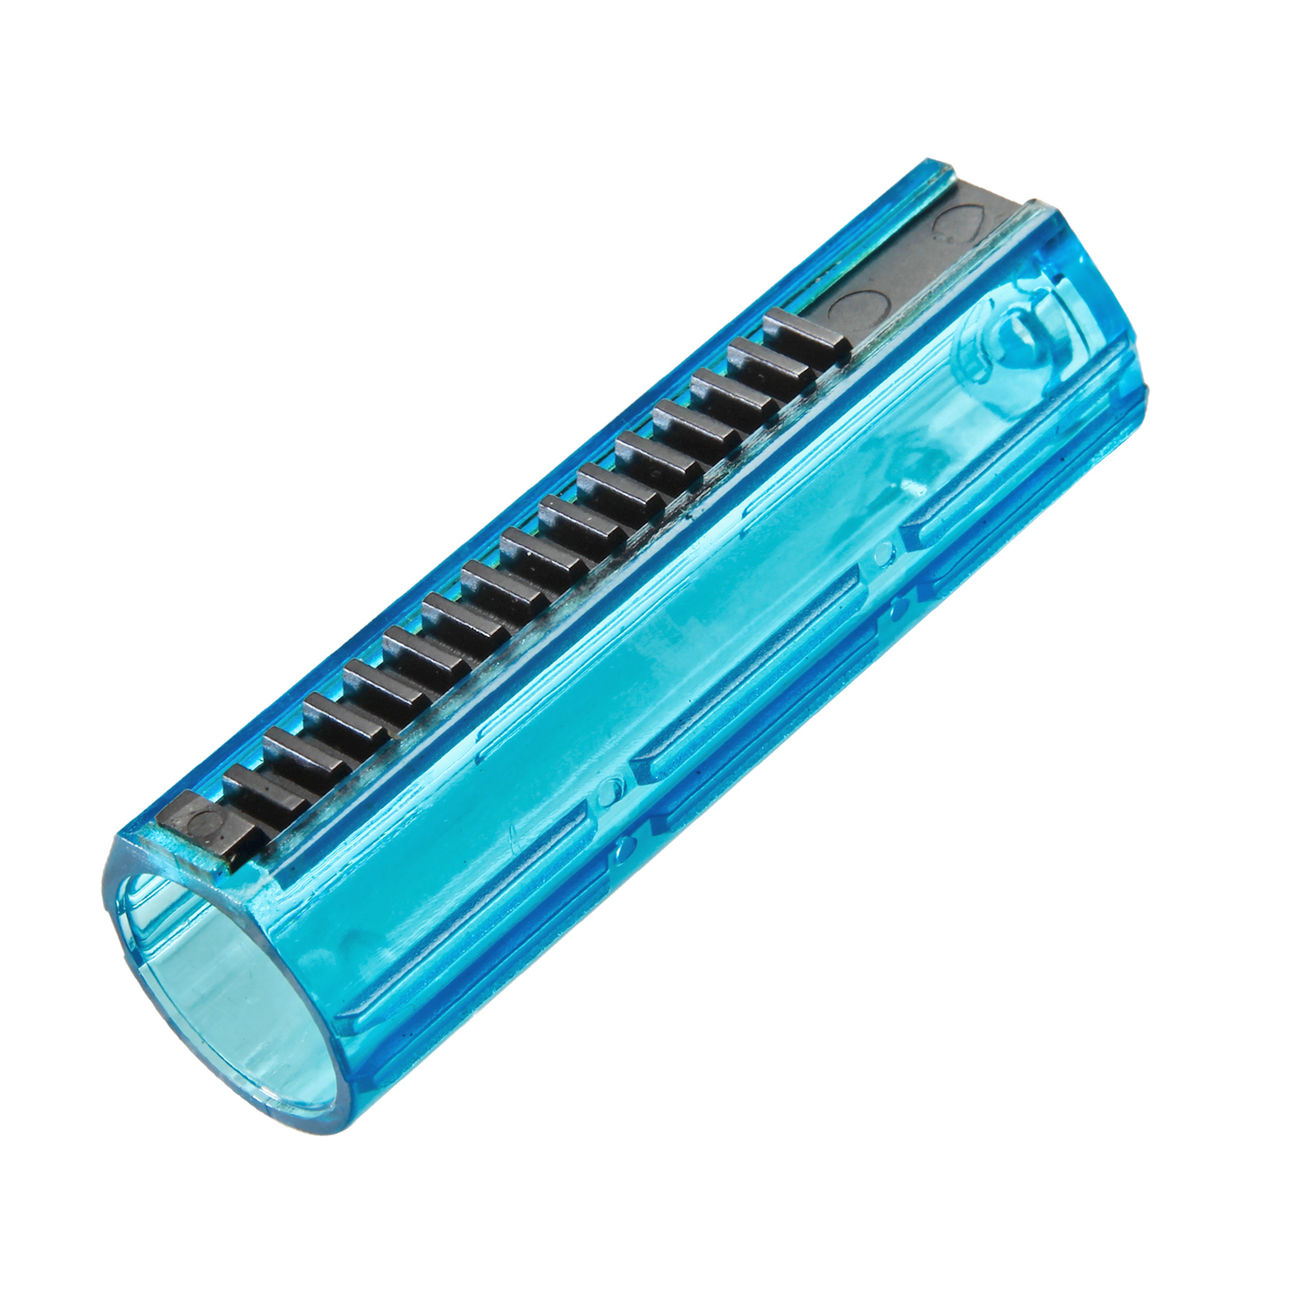 Super Shooter Polycarbonate LW Piston mit 15 Stahlzähne (Vollzahn) blau 0